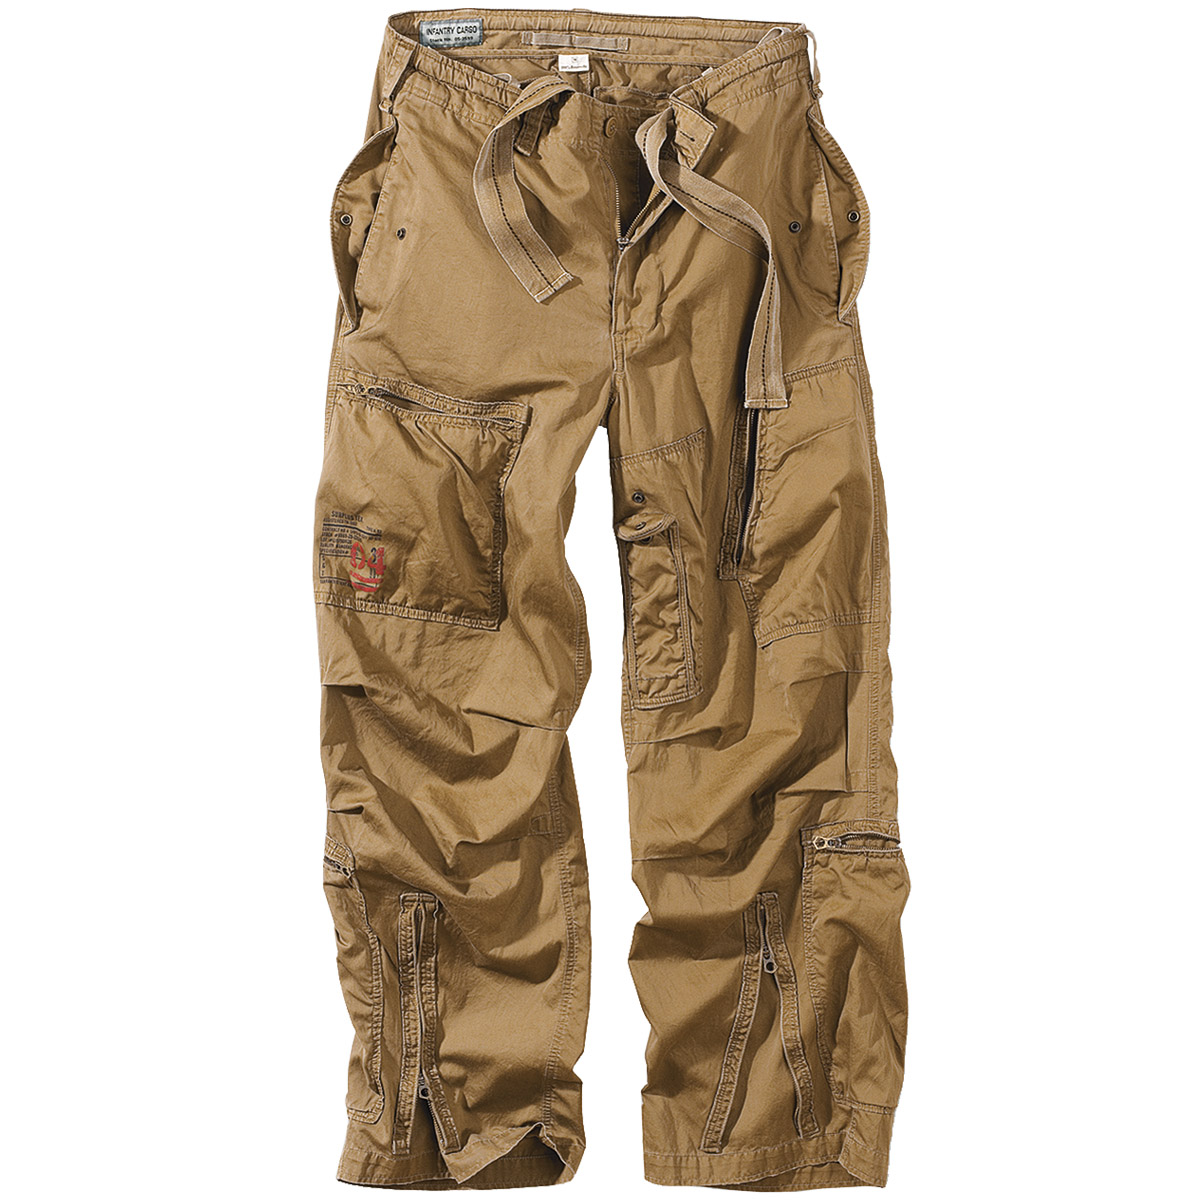 surplus infantry hose combat pants herren cargos baggy armee stil coyote s xxl ebay. Black Bedroom Furniture Sets. Home Design Ideas